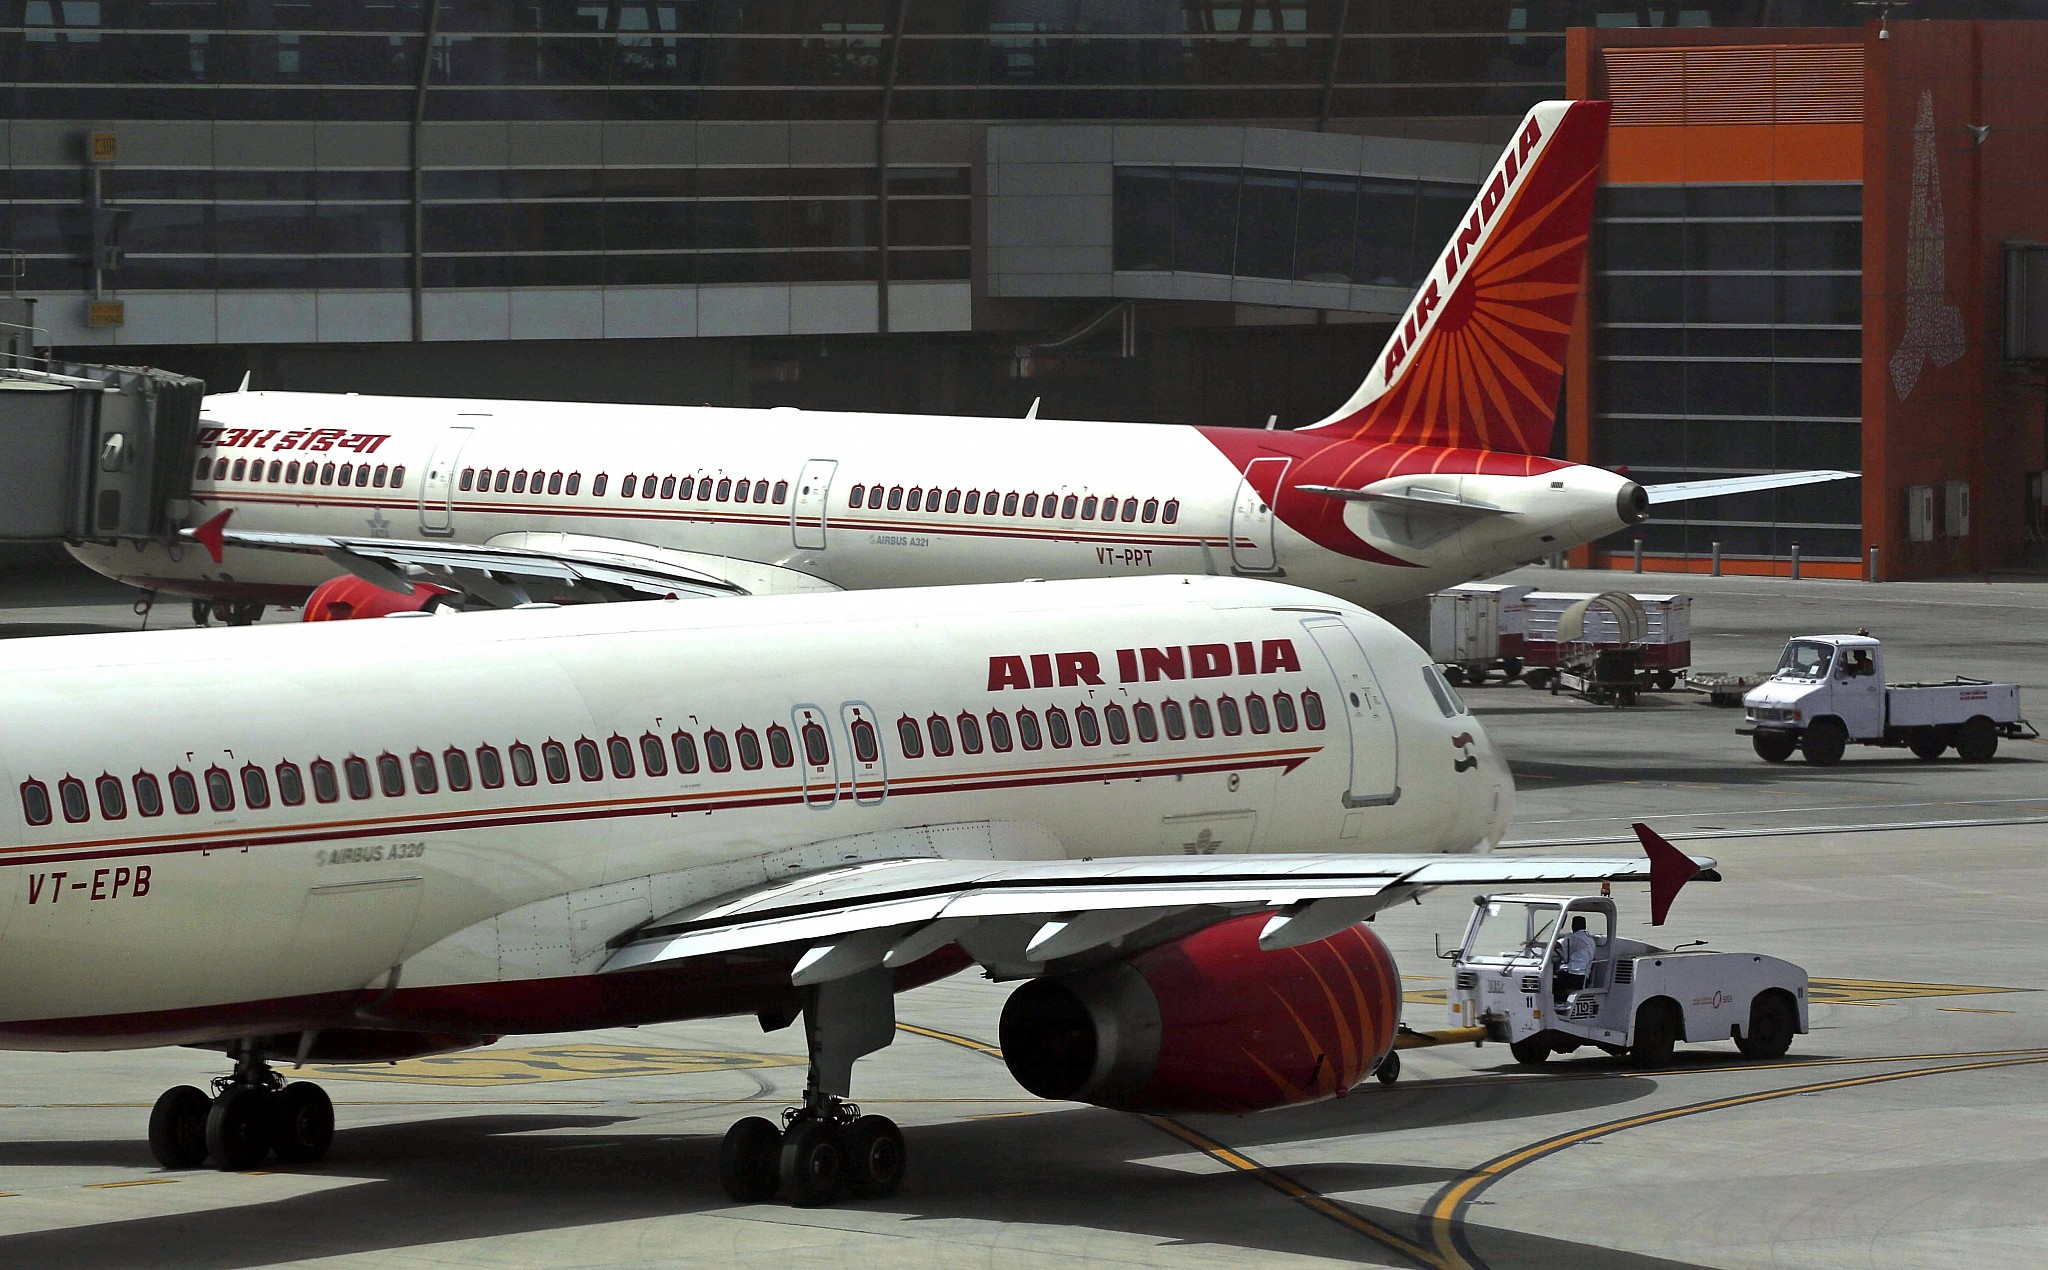 Air India confirms its Israel flights over Saudi Arabia will start next week | The Times of Israel